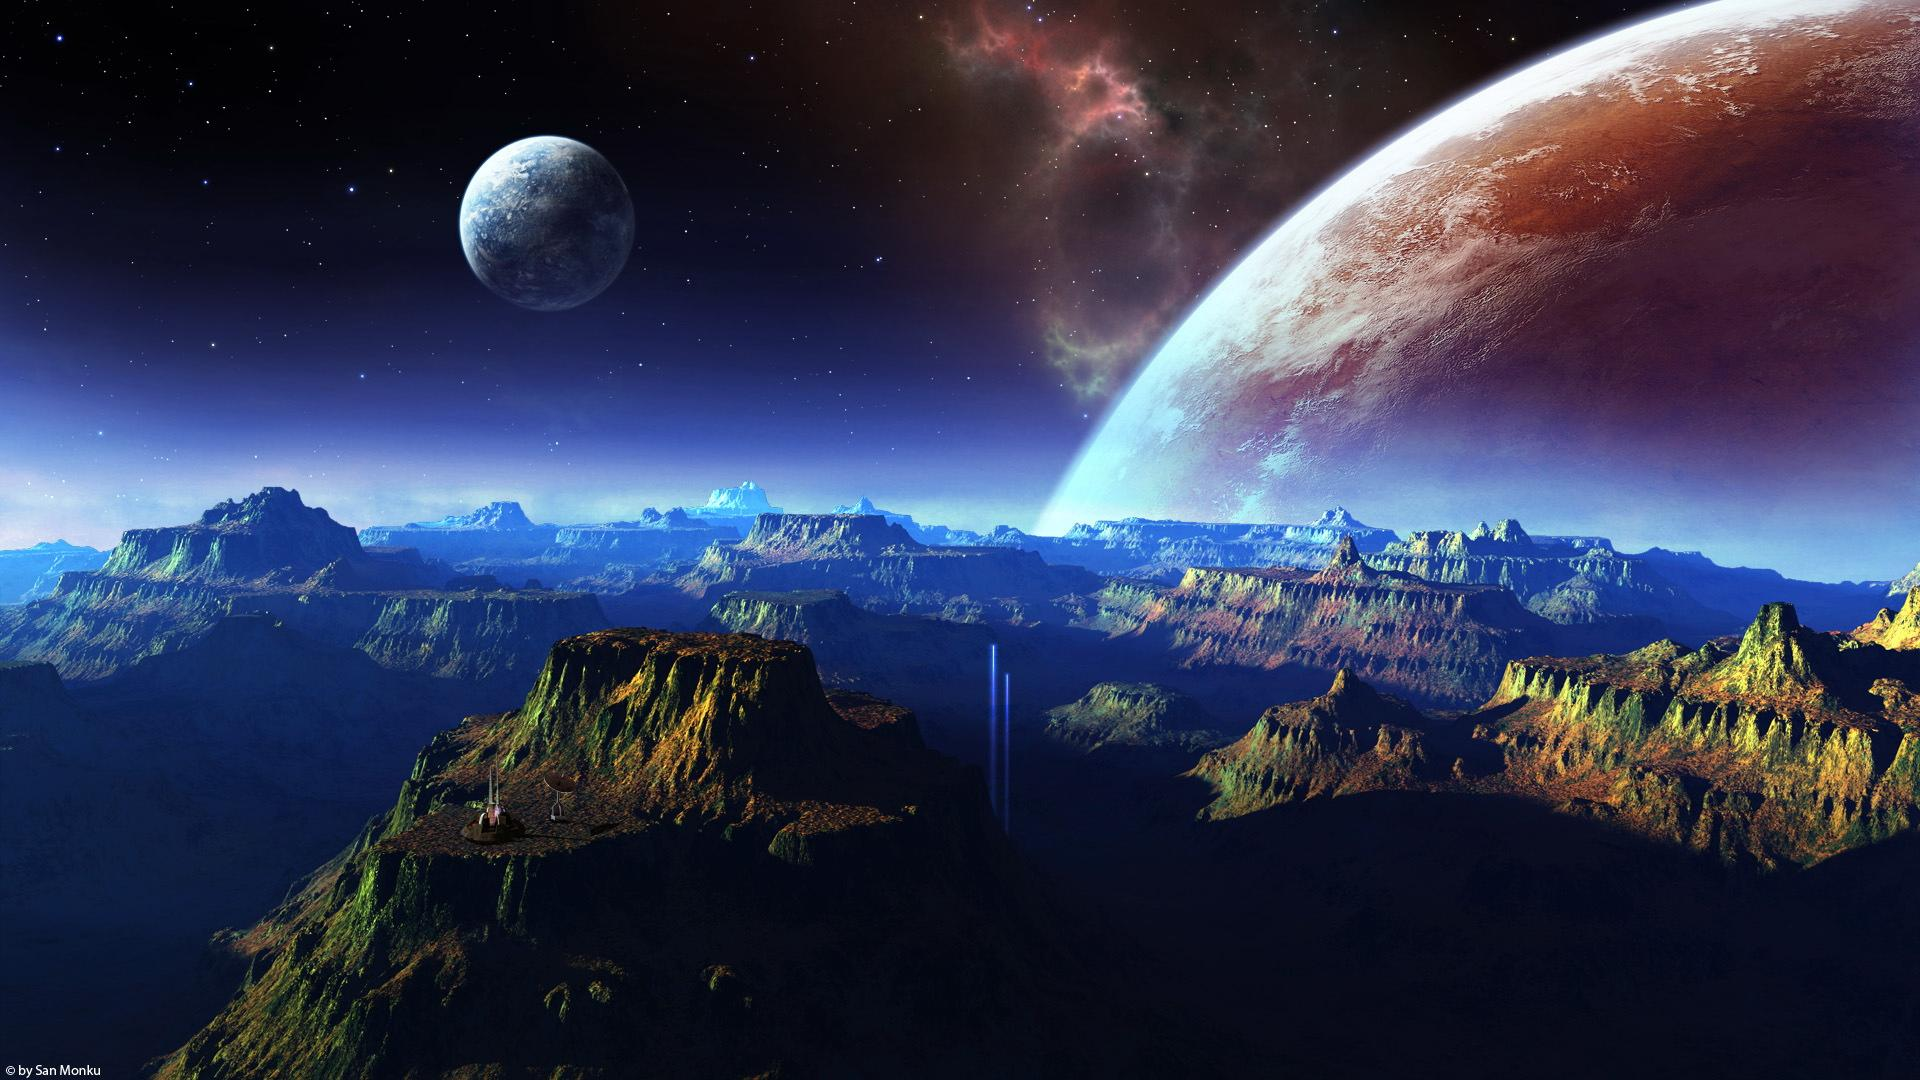 Desktop Backgrounds Space | Download HD Wallpapers